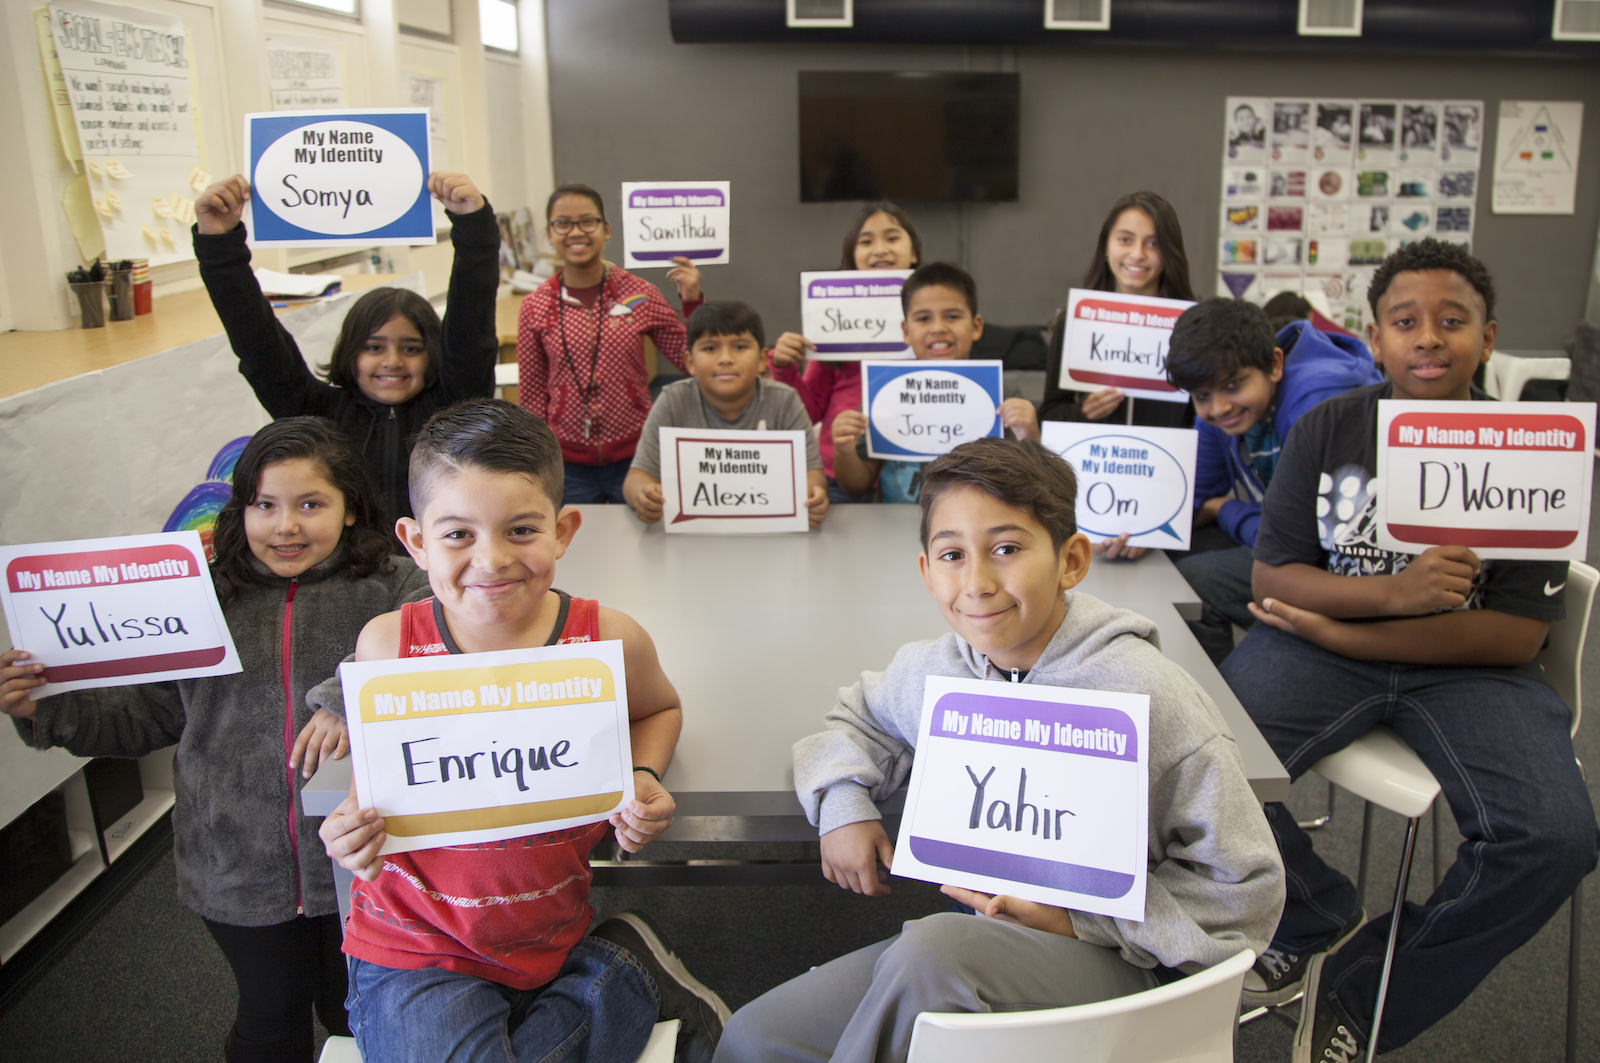 Students in a classroom holding up signs with their names on them